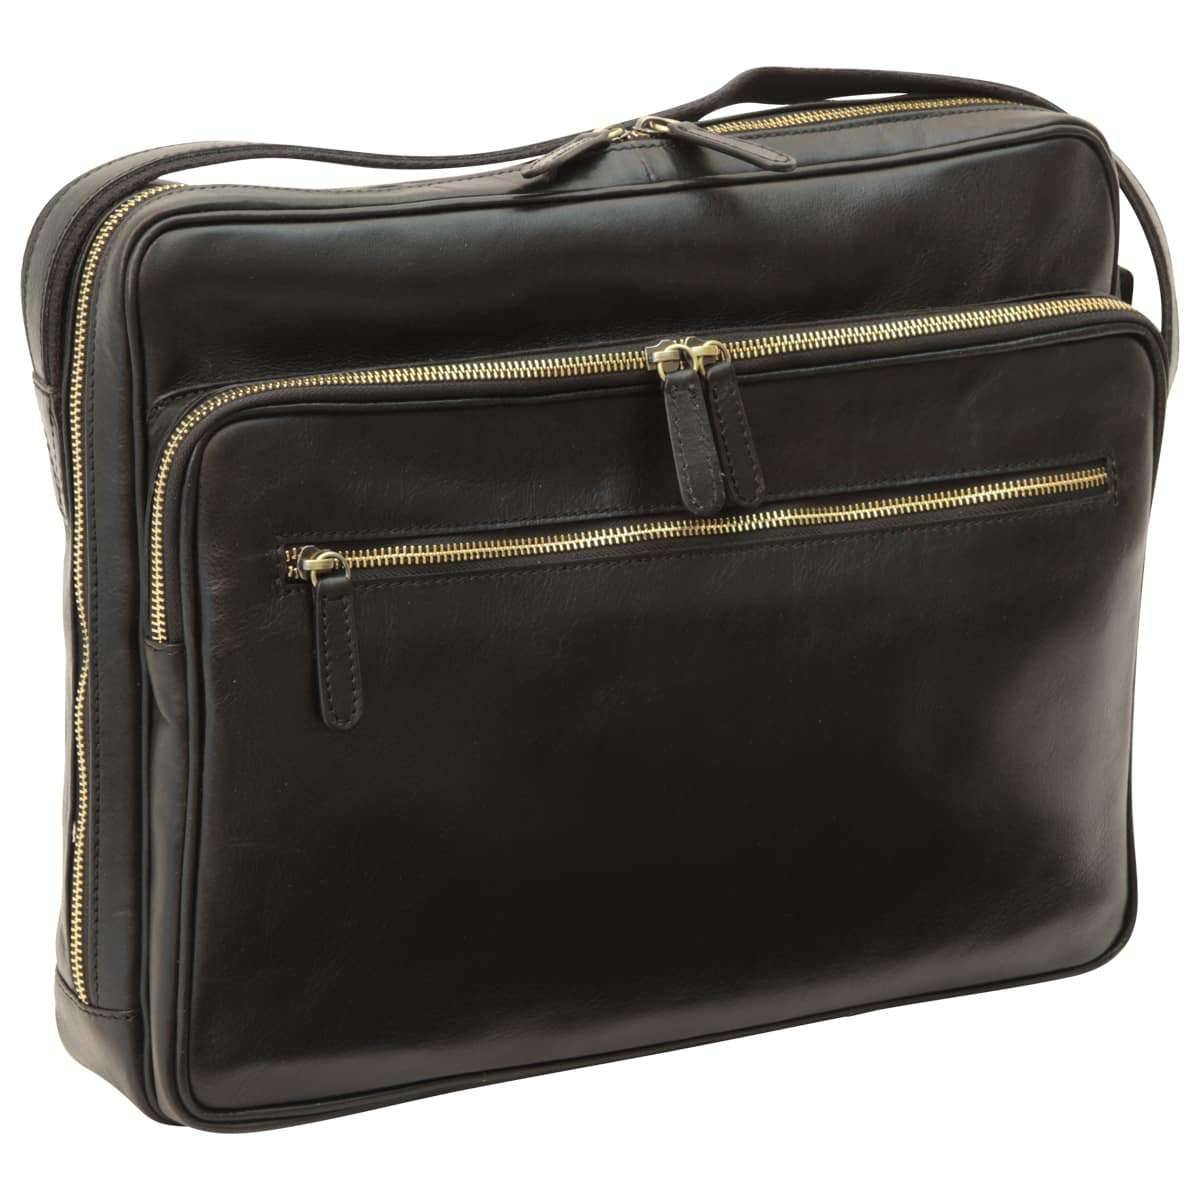 Large leather bag with zip closures - Black